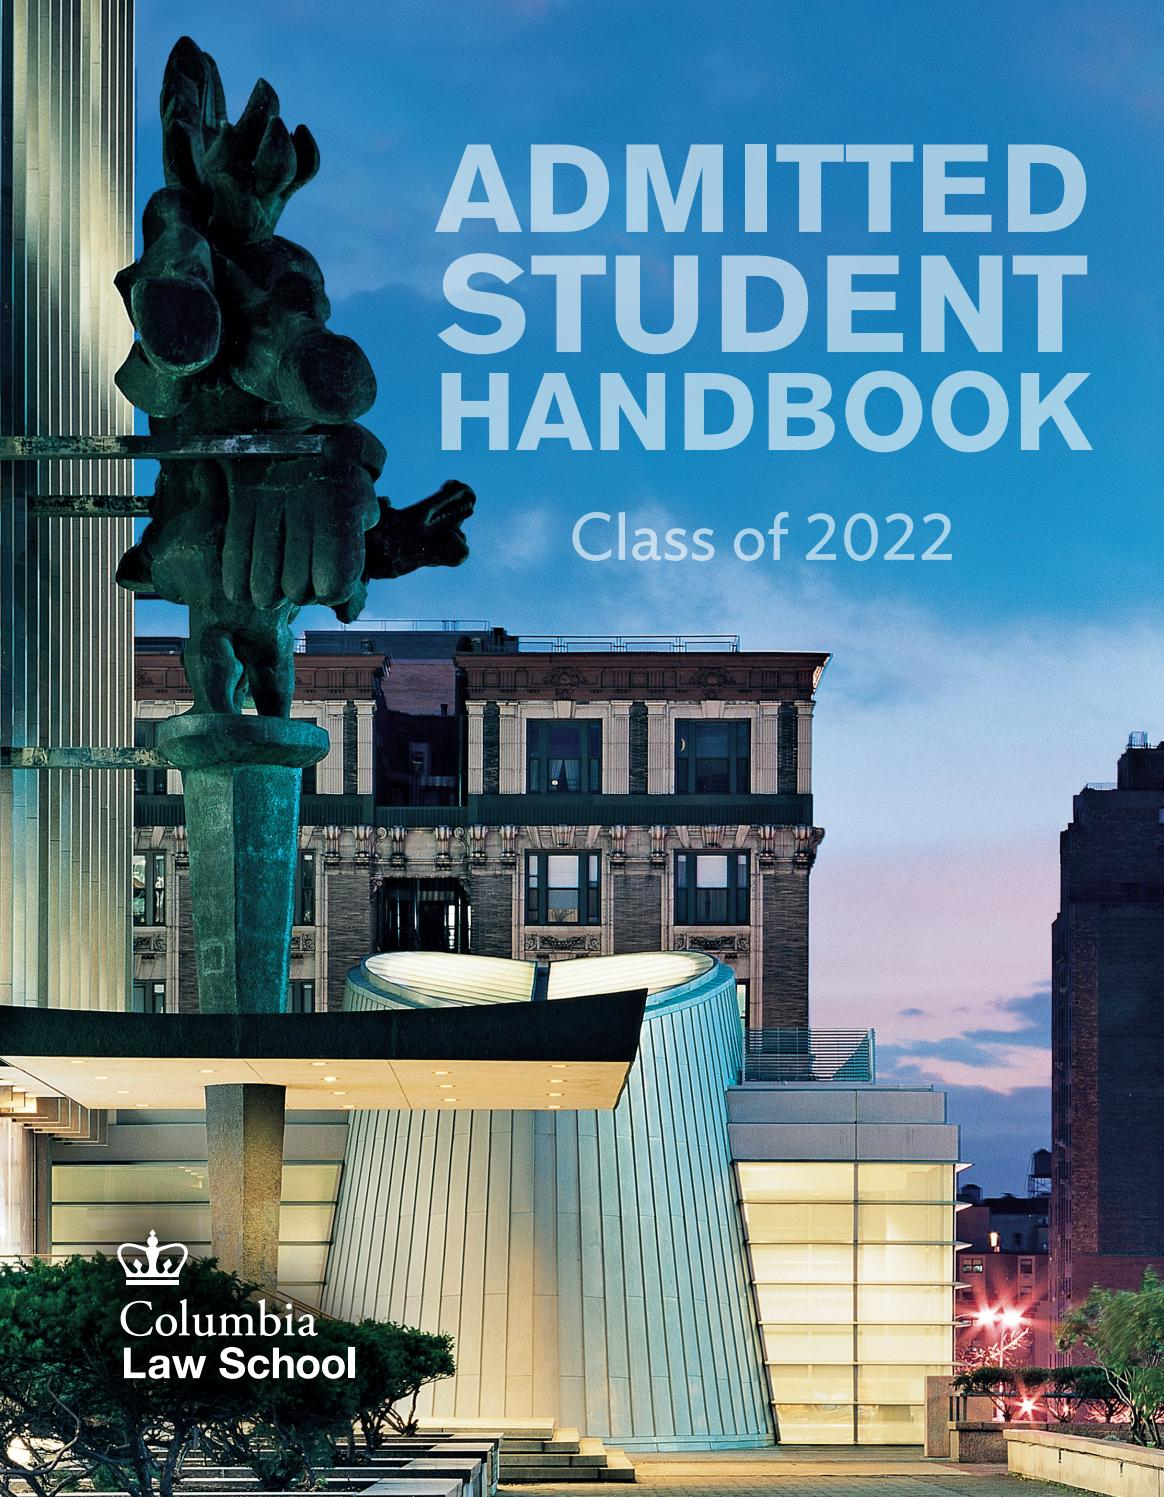 Columbia University Calendar 2022.Admitted Student Handbook Class Of 2022 By Cls Webcomm Issuu